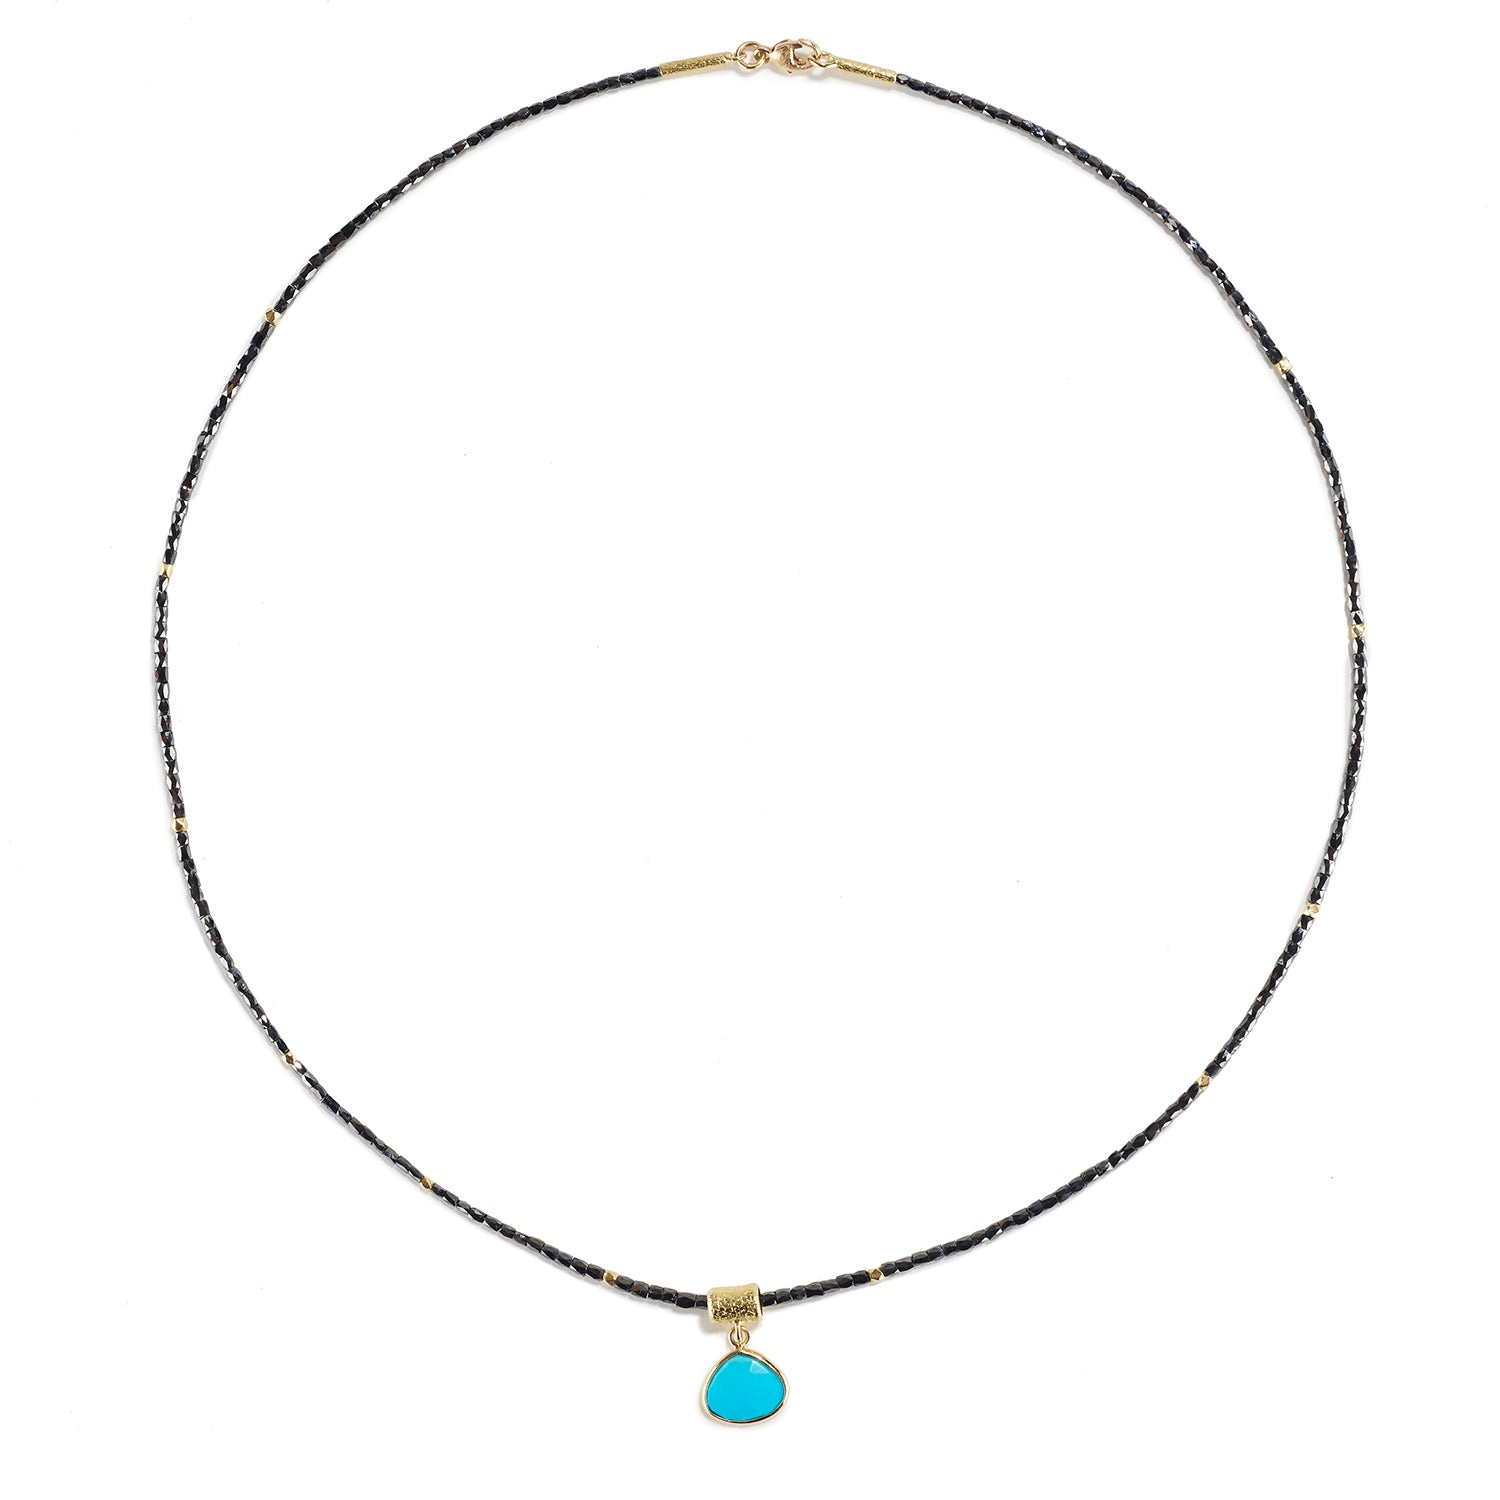 Long Black Diamond Necklace with Turquoise Drop